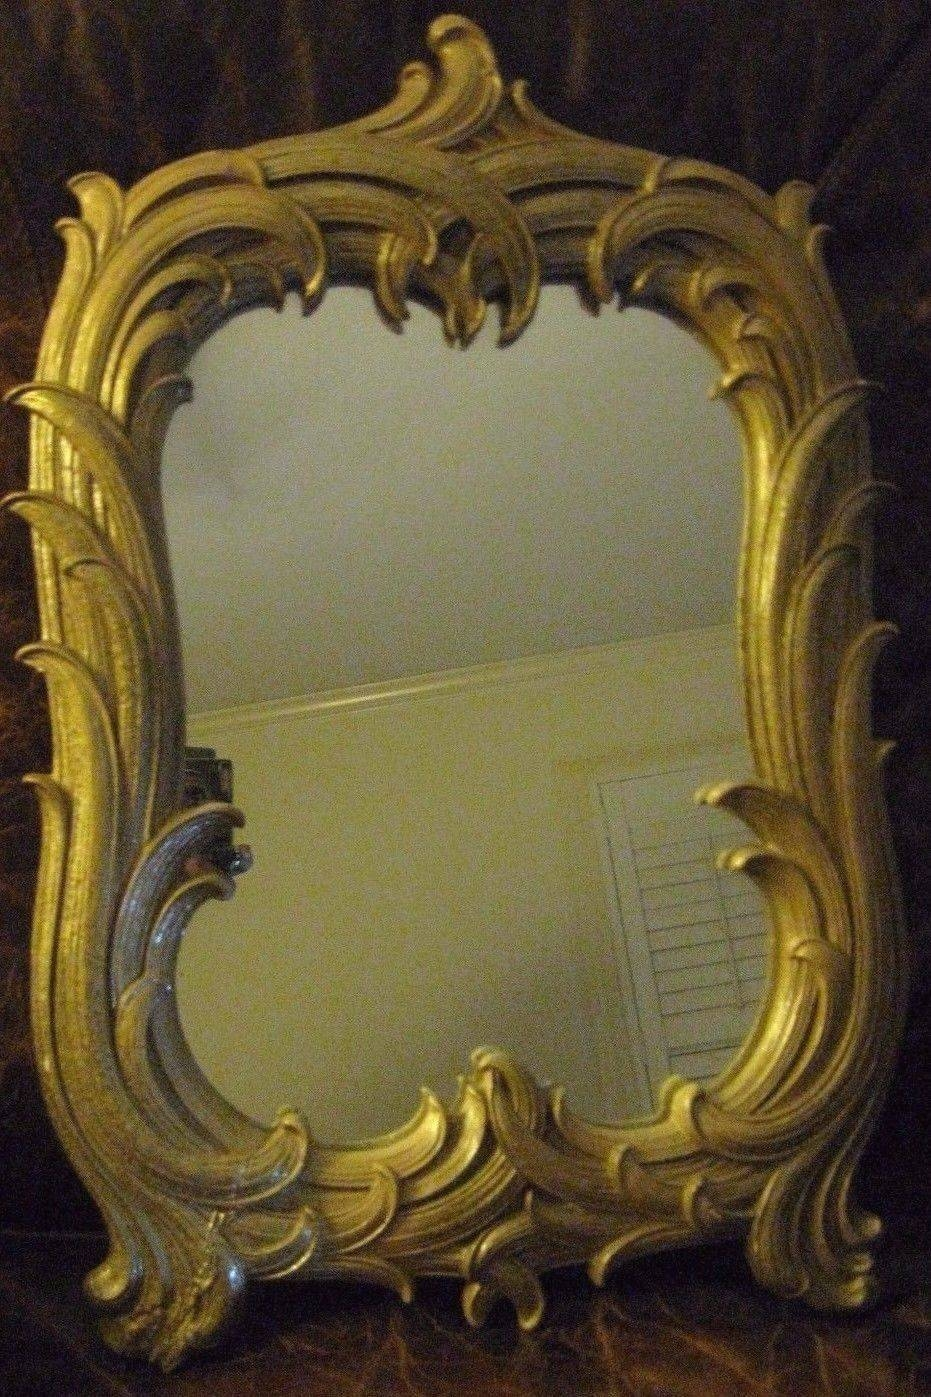 Antique Gilt Mirror With Palm Leaf Frame-On-Reflection Design regarding Antique Gilt Mirrors (Image 11 of 25)